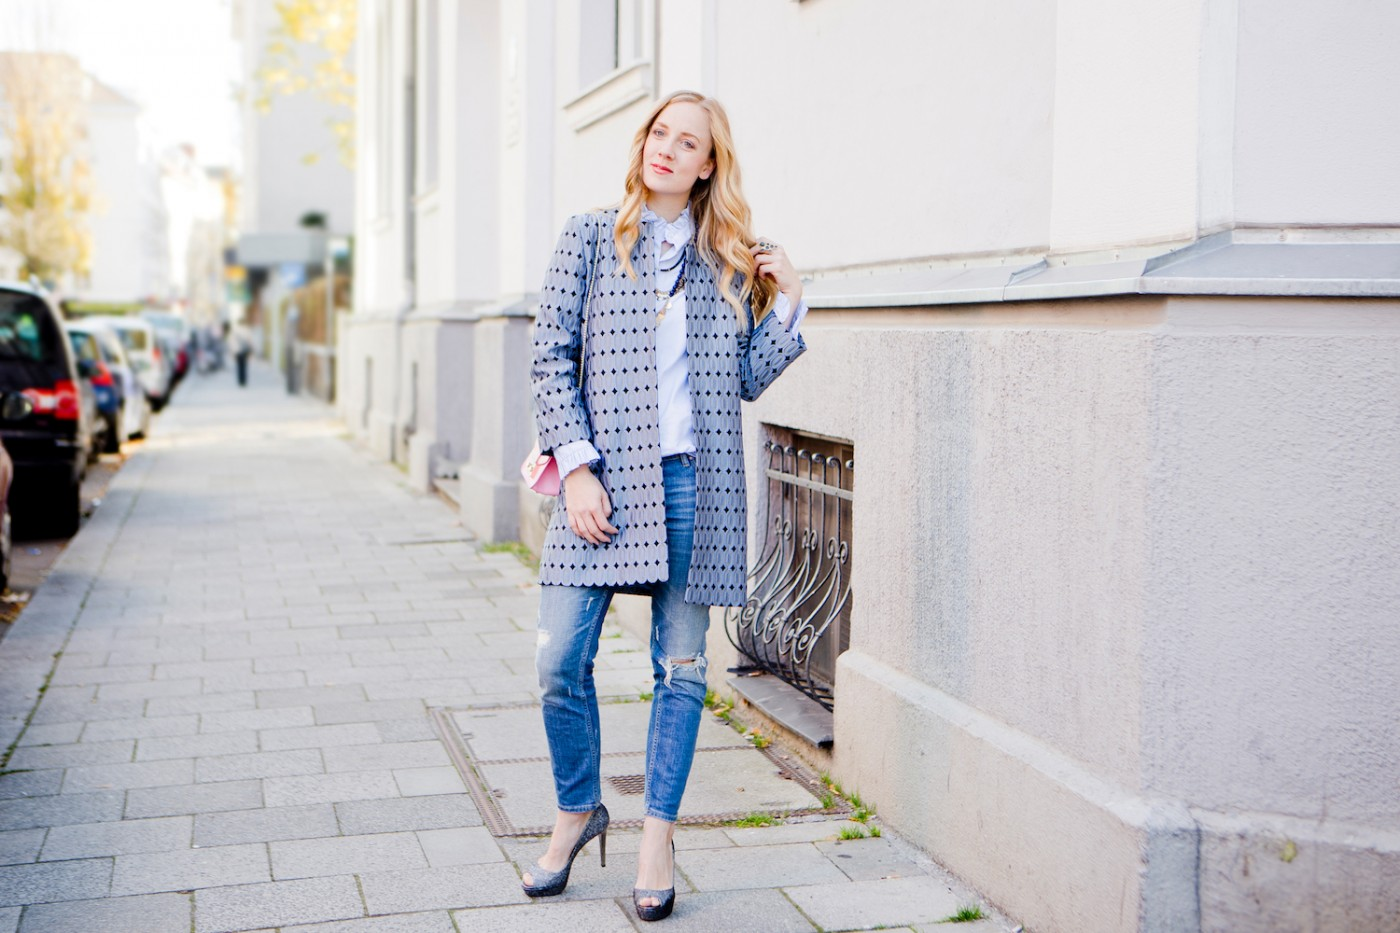 elegant look with ripped jeans, eleganter Hallhuber Mantel,  Jimmy Choo pumps, Claudie Pierlot blouse, The Golden Bun | München Modeblog, German Fashion Blog, Fashionblogger, new trends